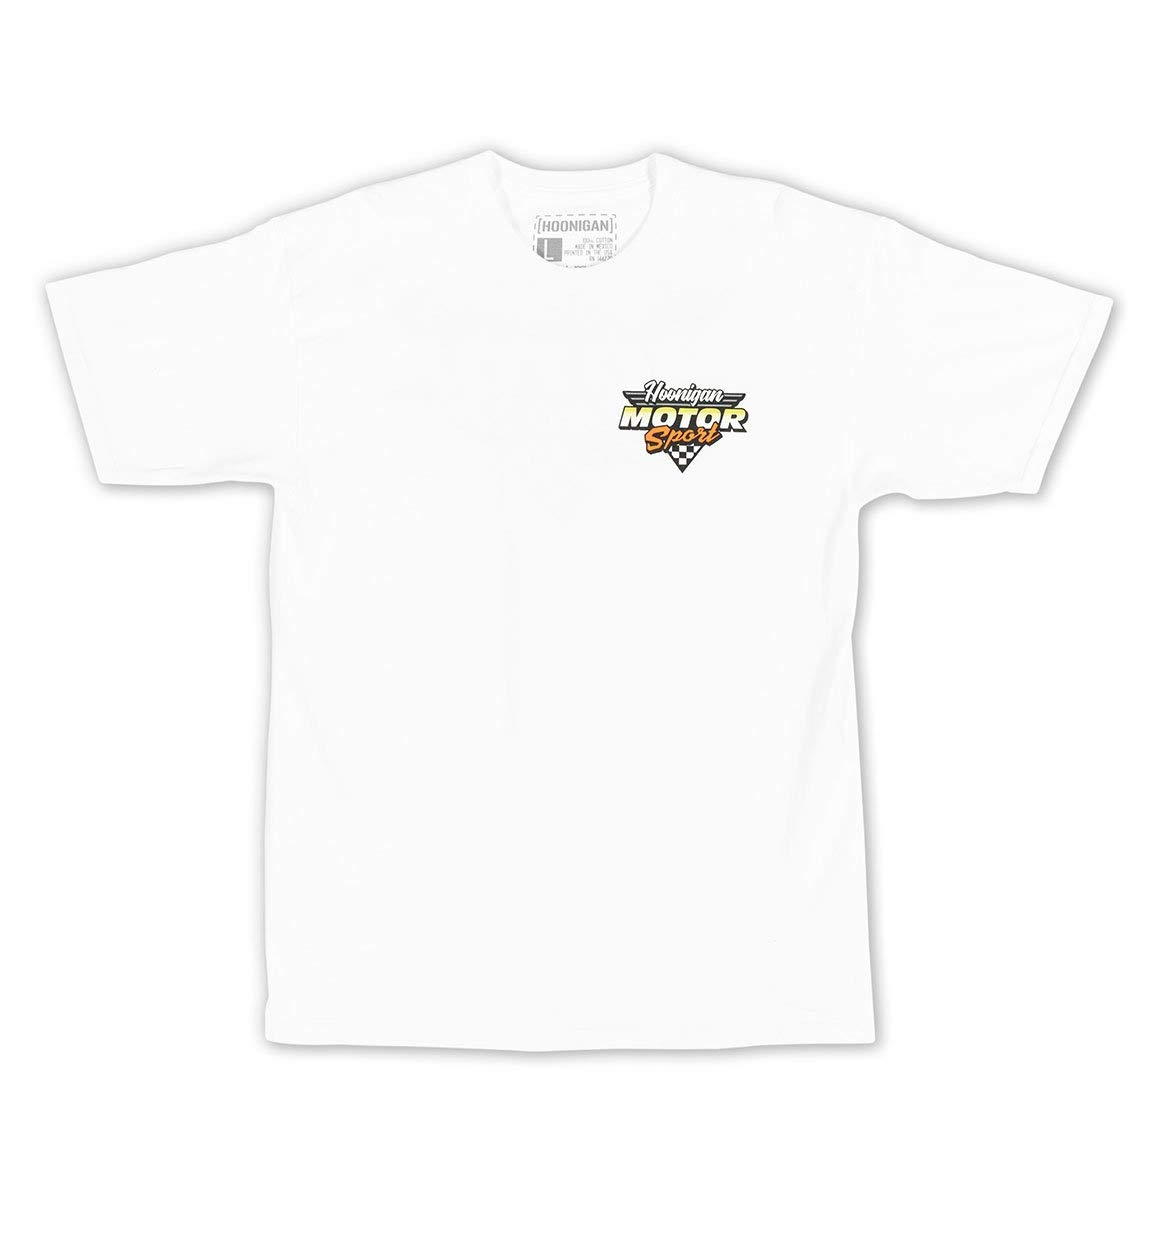 Gear-Heads Car Truck Motorcycle Enthusiasts Drifting Race-Car Sports Fans Gift for Him Best Cool Graphic Tee for Mechanics Hoonigan HNGN Motorsport Short Sleeve